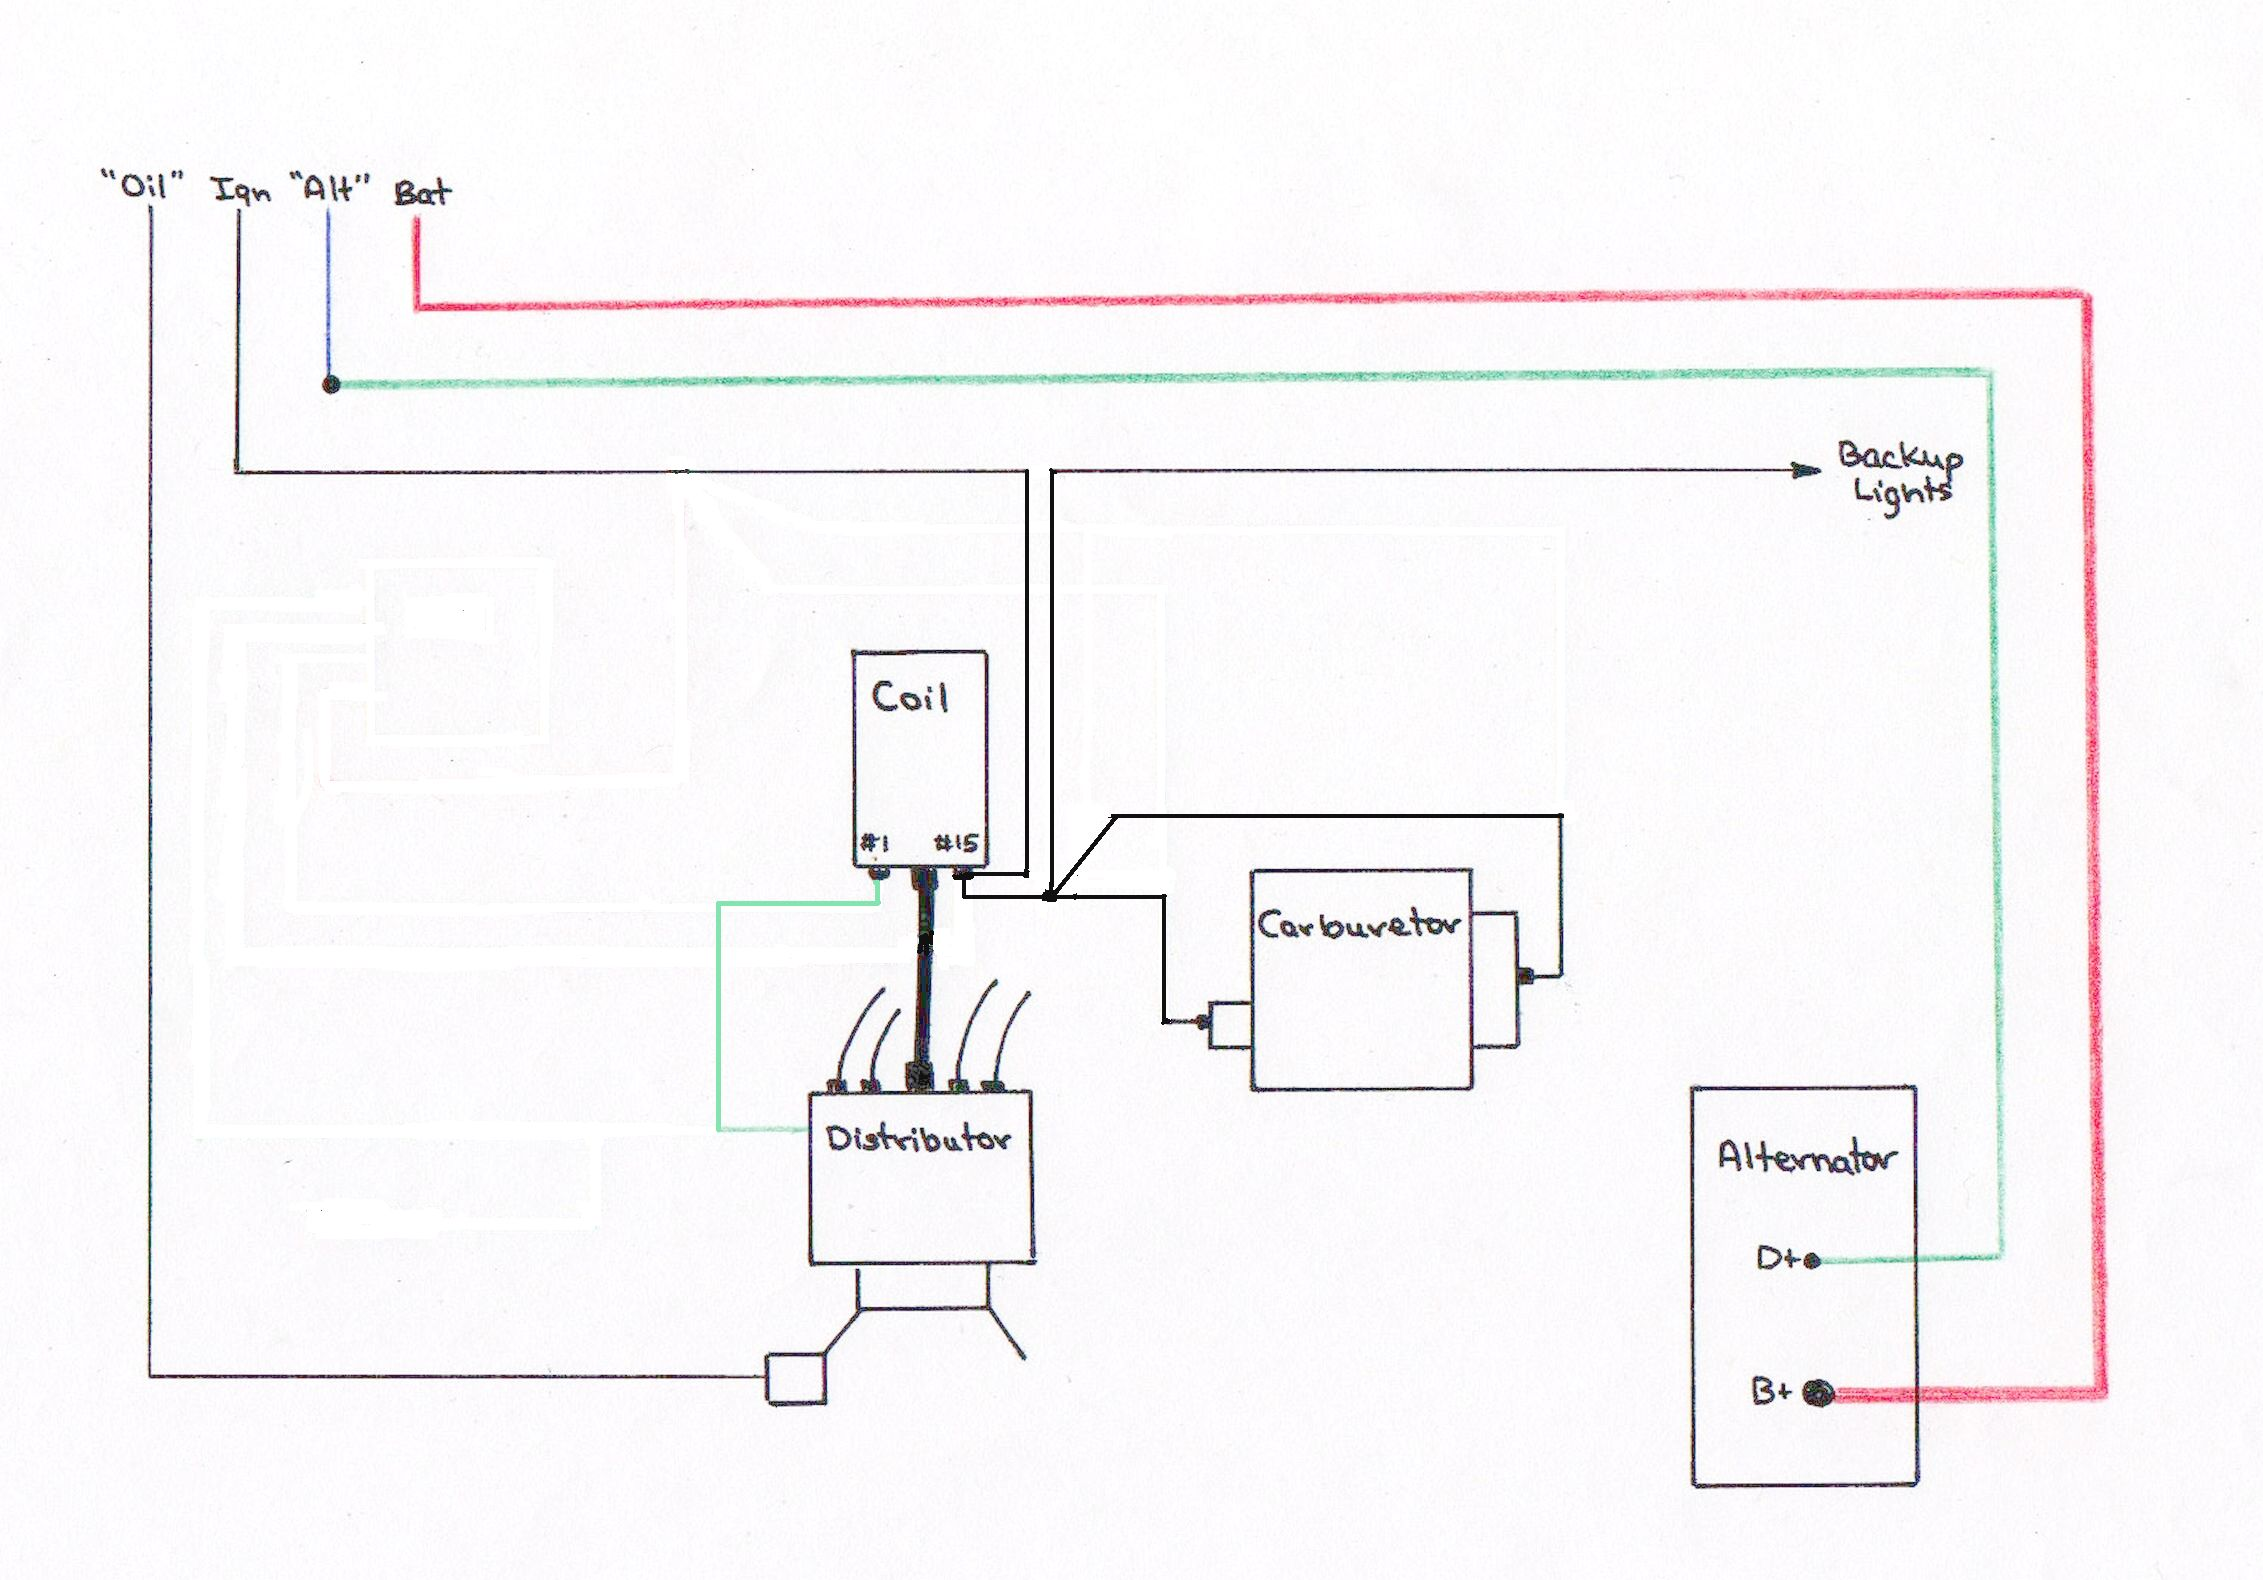 handdrawn_schematic alternator wiring external regulated alternator wiring diagram at aneh.co